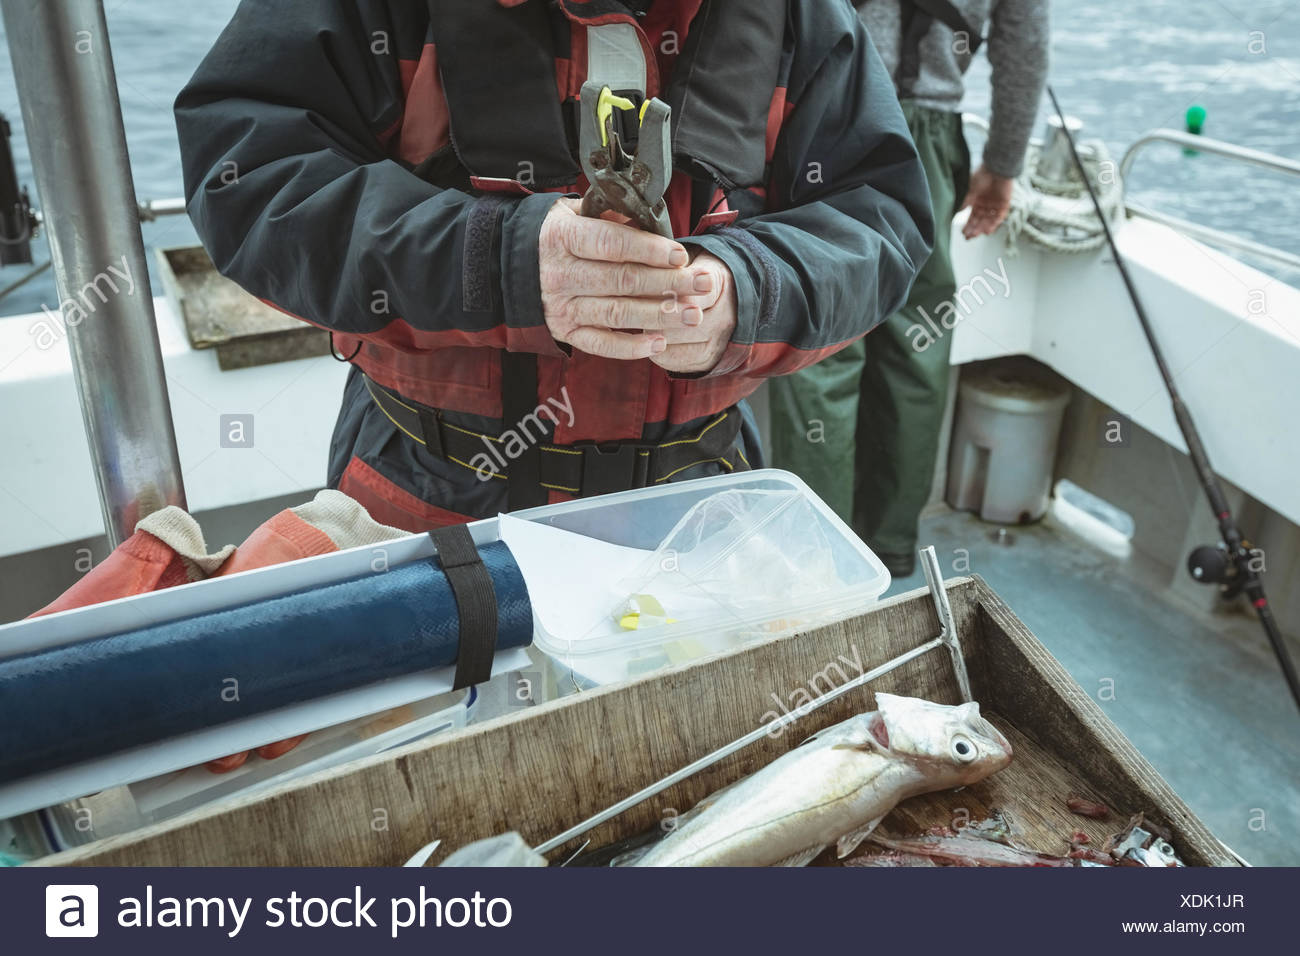 Fisherman pressing tag with hand tool - Stock Image